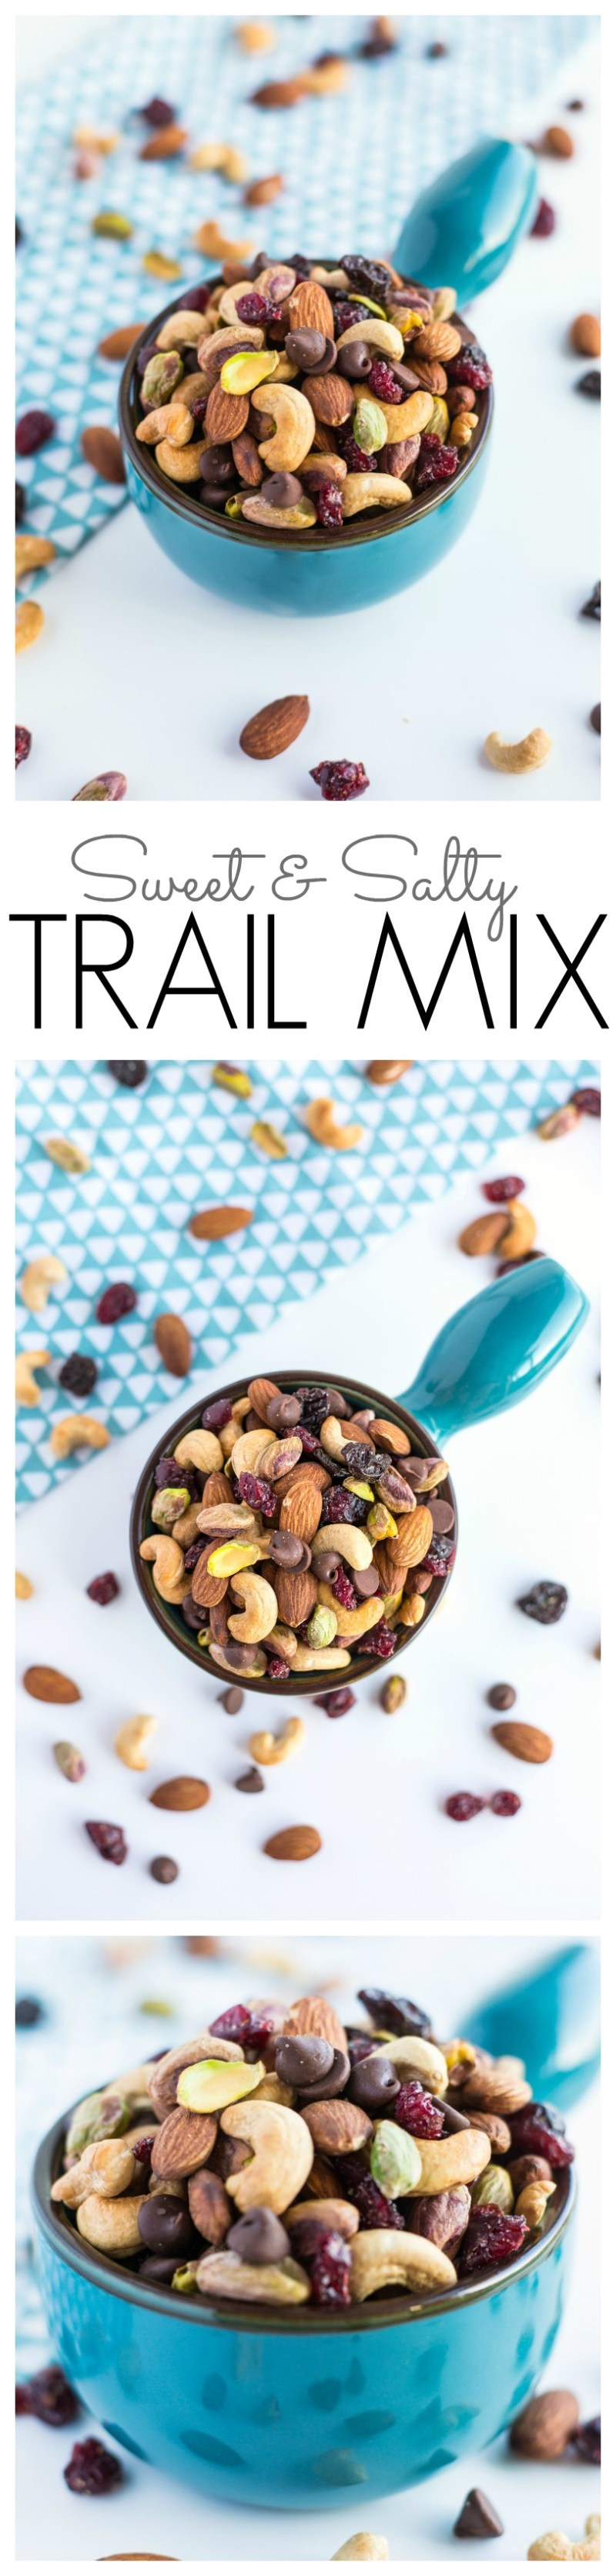 sweet and salty trail mix